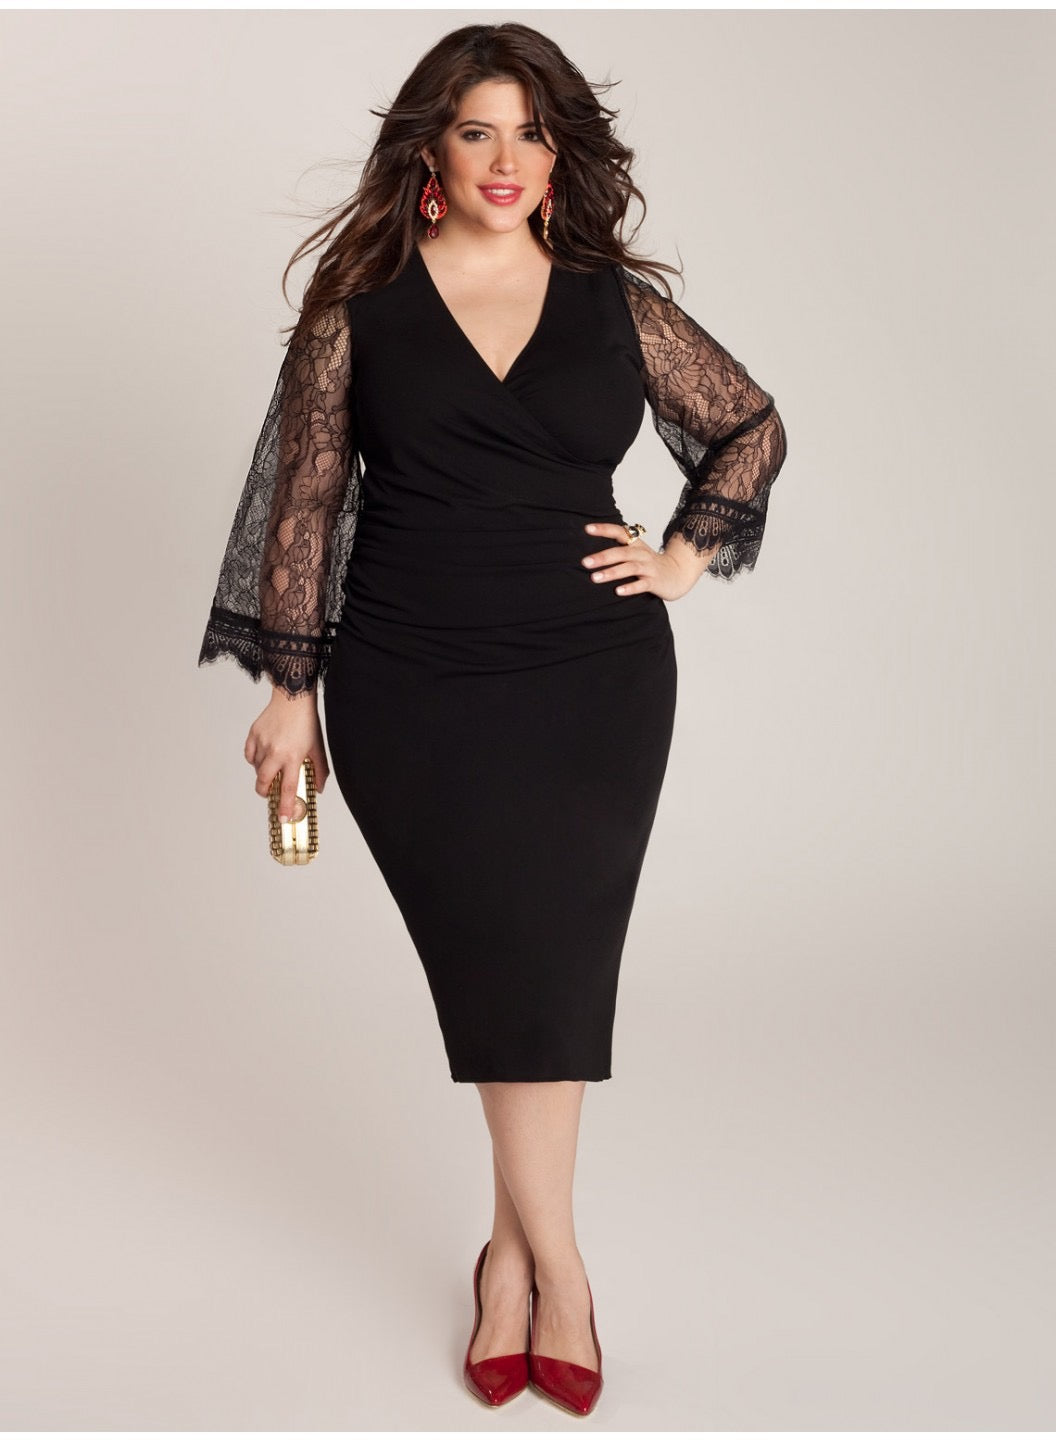 Paola Plus Size Black Dress with Lace Sleeves